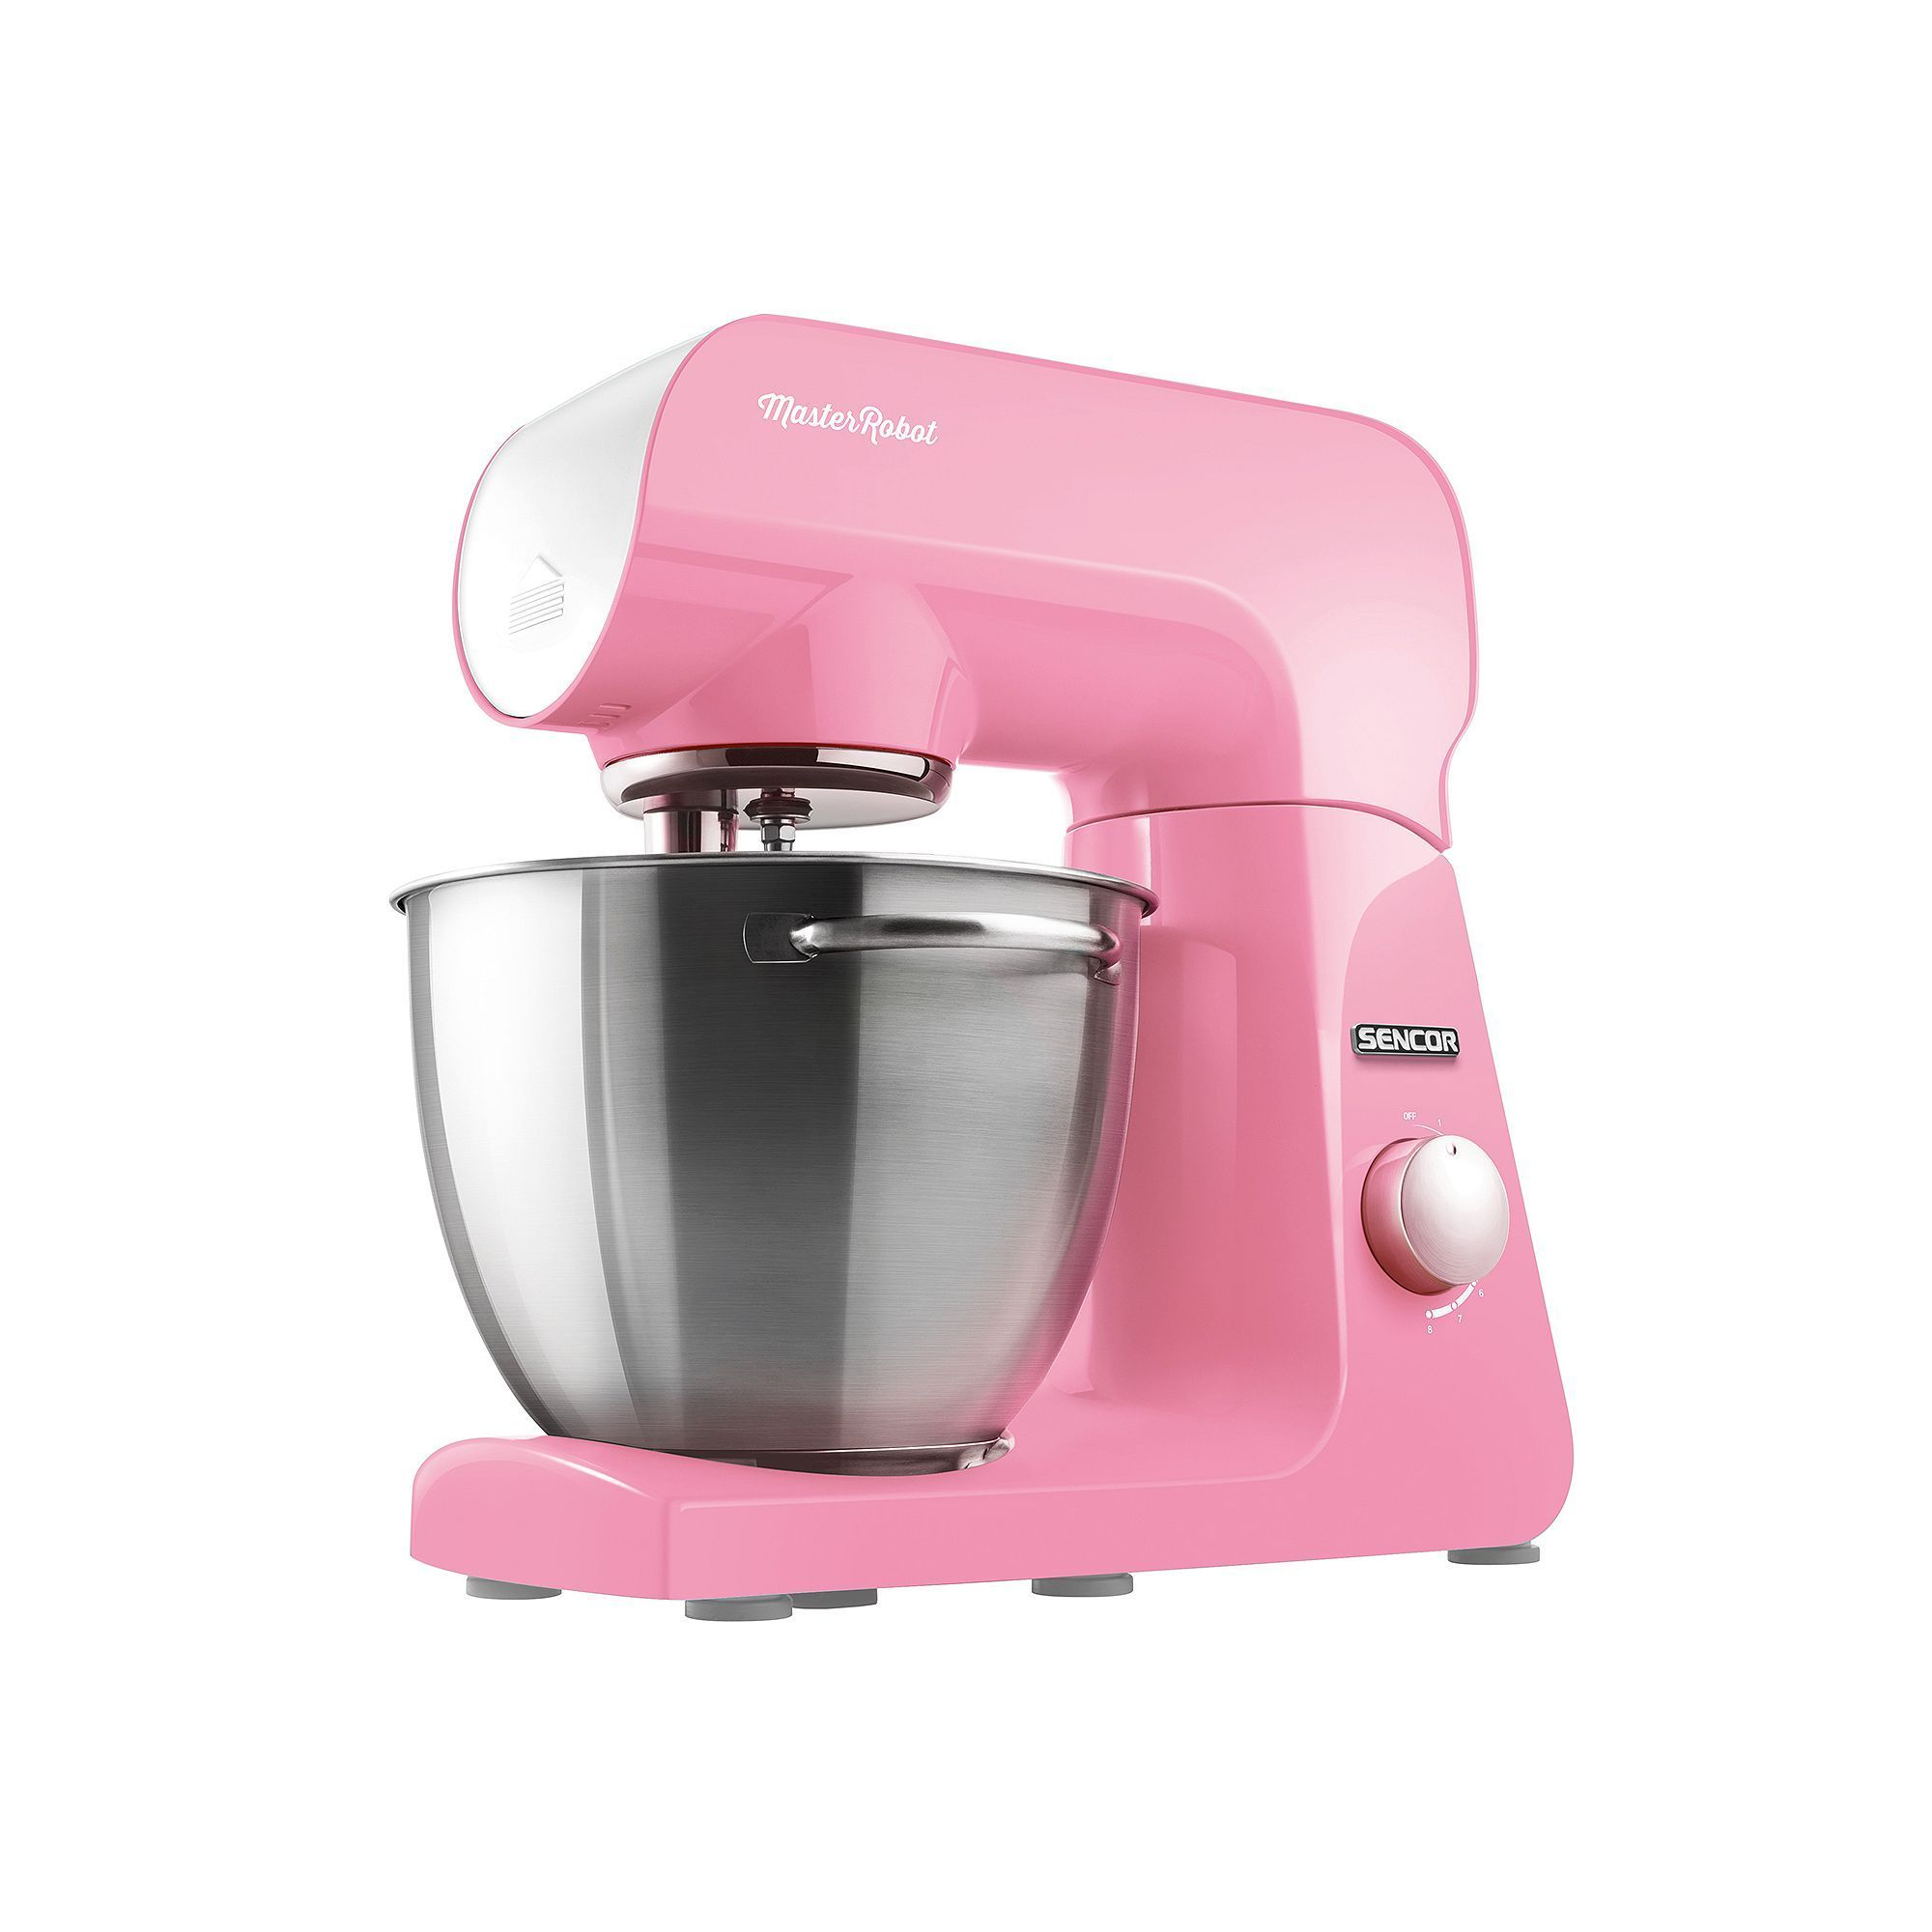 Kitchenaid Küchenmaschine Video Sencor 4 75 Qt Stand Mixer With 6 Accessories Products Stand